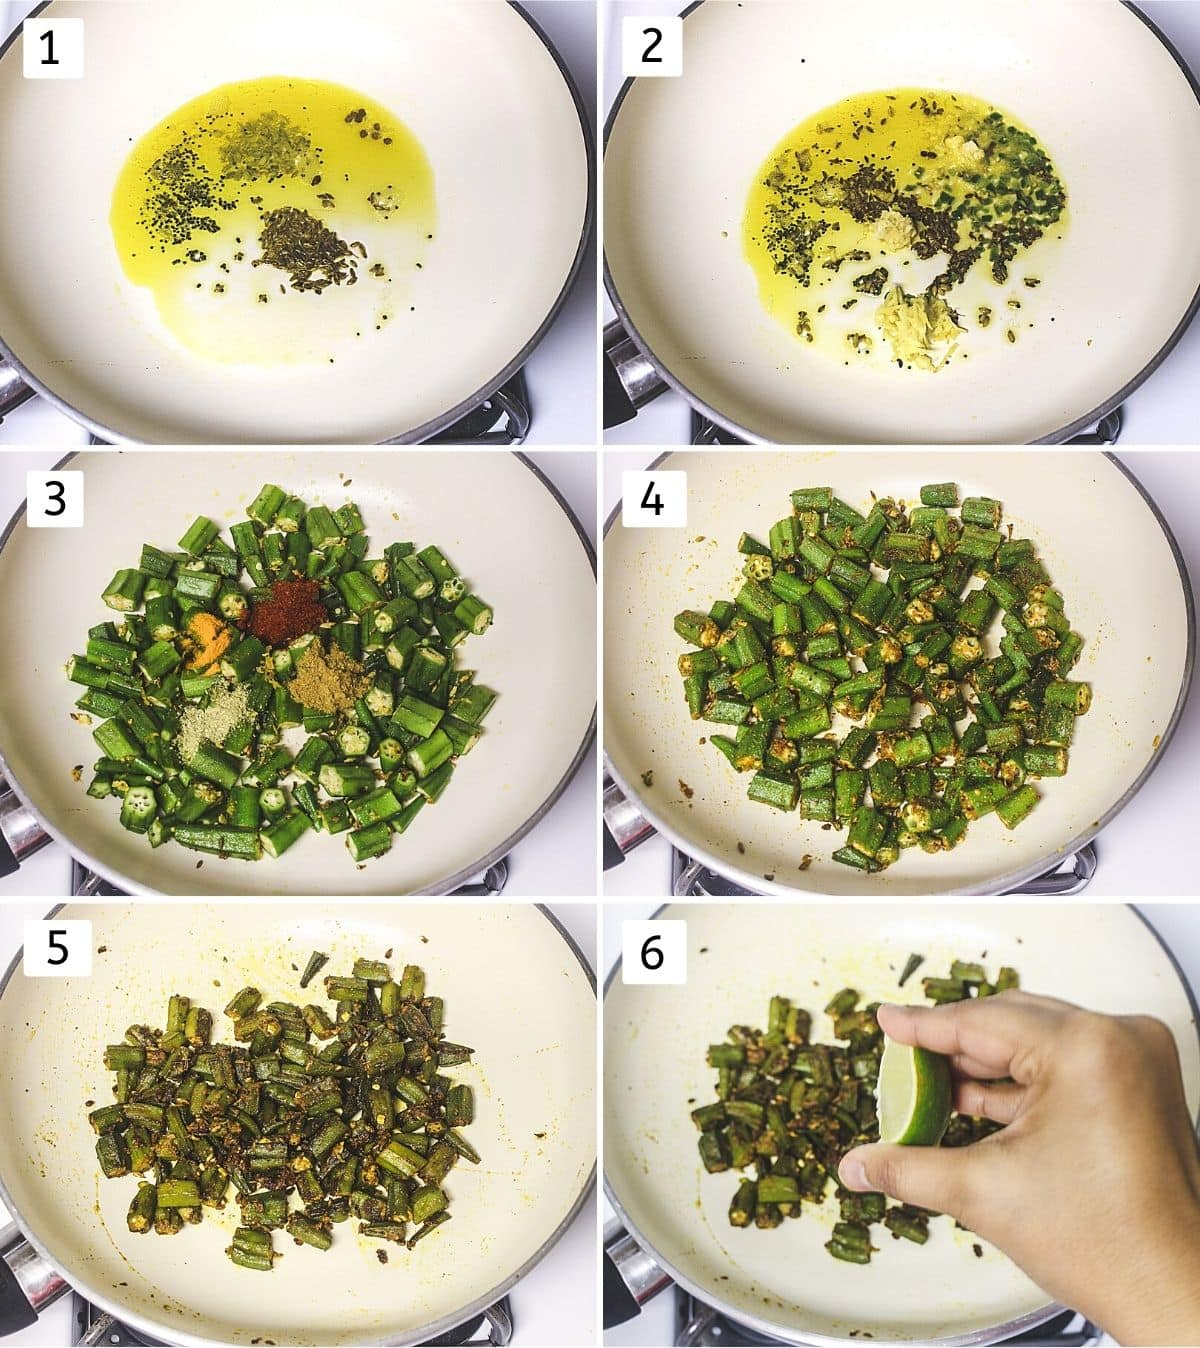 Collage of 6 steps showing tempering spices, adding ginger, garlic, adding okra and spice powders, mixing, cooked, squeezing lime.